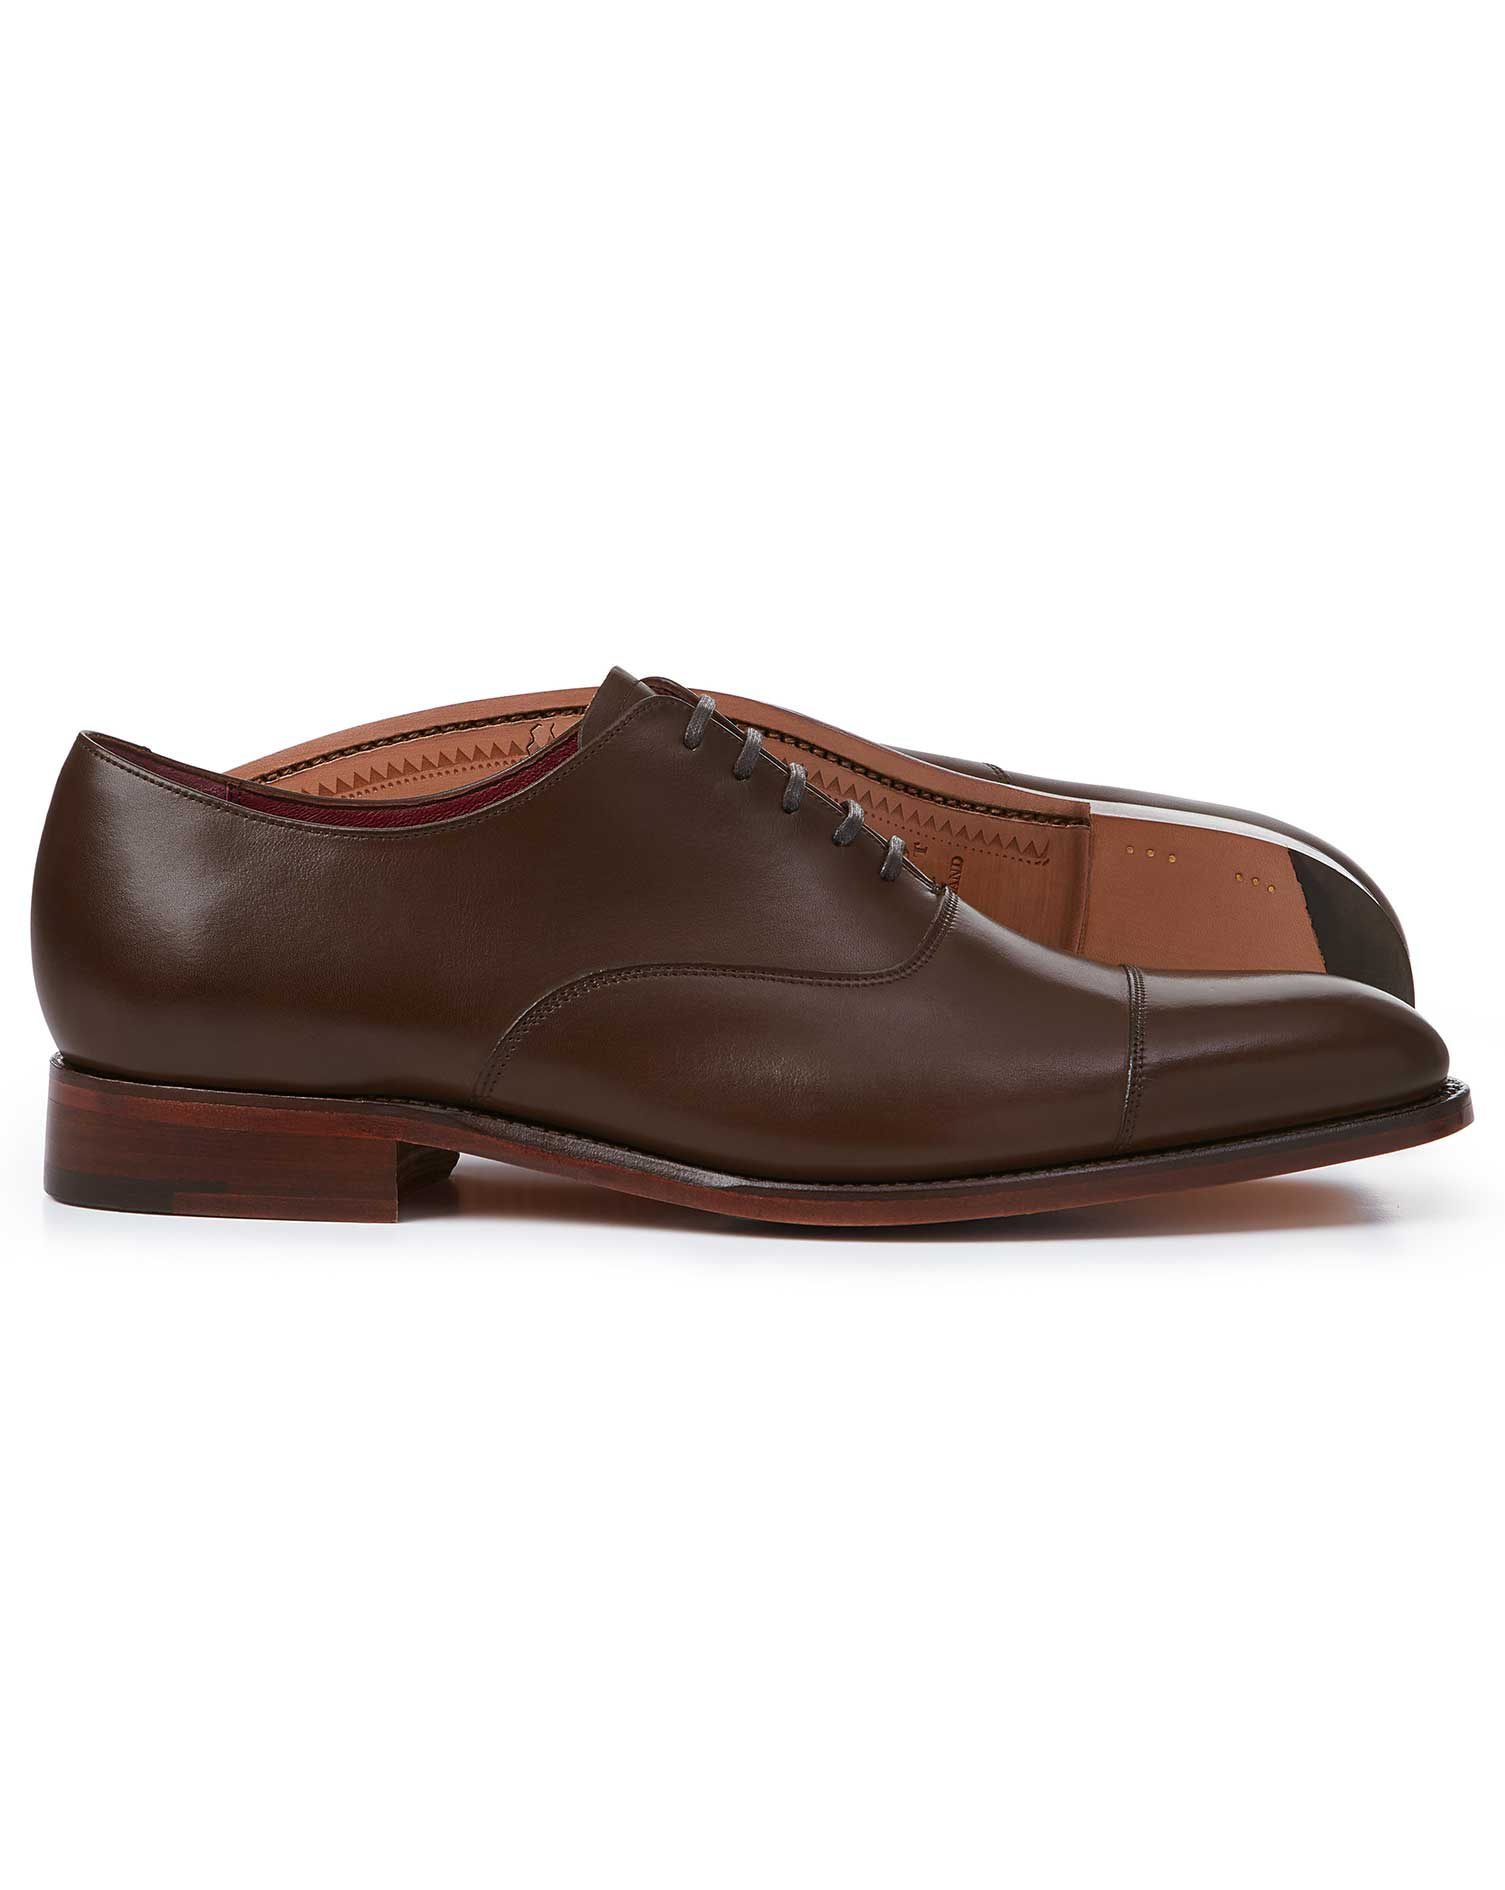 Leather Chocolate Made In England Oxford Flex Sole Shoes